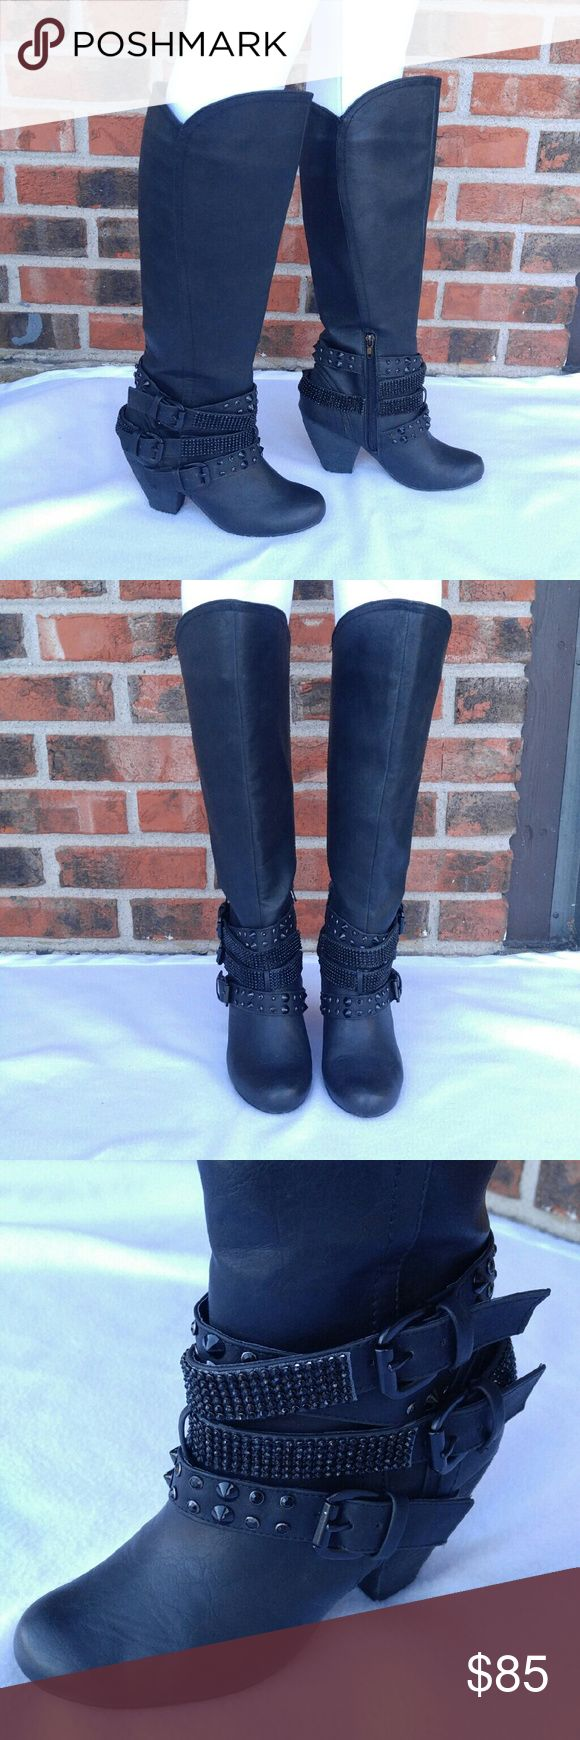 """Not Rated//Cocktail Queen Riding Boots ▫Not Rated Cocktail Queen Riding boots ▫Size 6 ▫Black with rhinestone and spike embellishments, 3 belt strap detail at the ankle ▫Zips from the inner ankle area, zipper measures 6"""" inches ▫Worn for one occasion ▫Pictures DO NOT does these beauties justice!!! ▫Comes with styrofoam inserts and mesh bag protection for both boots ▫Measurements: 18"""" from top to bottom, Heel 3"""" 1/2 inches  ▪Please read description, see all pics, and ask questions before…"""